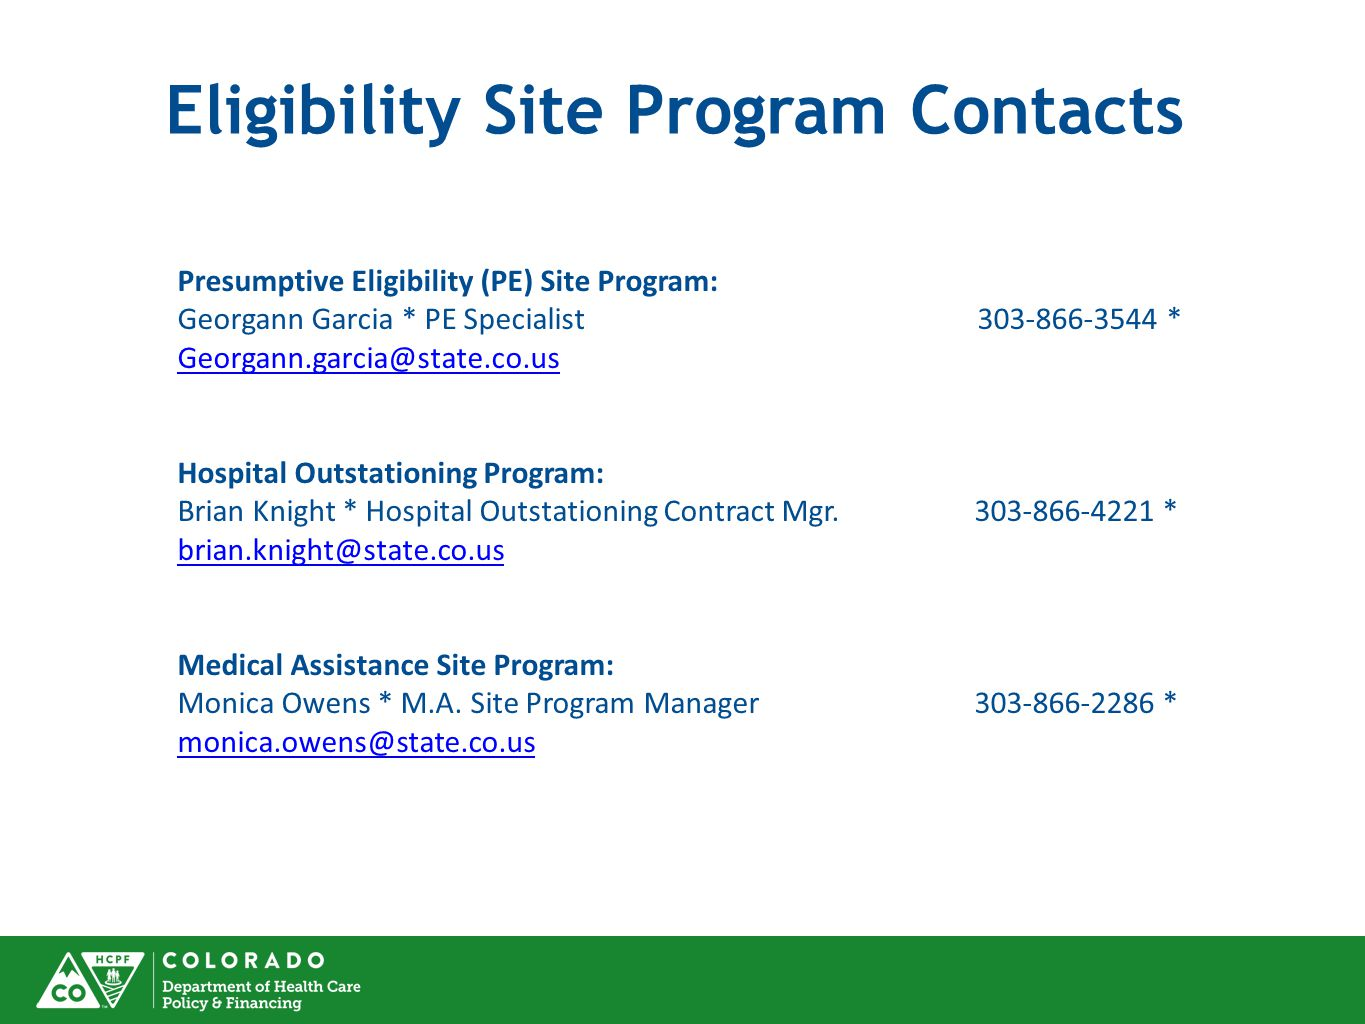 Eligibility Site Program Contacts